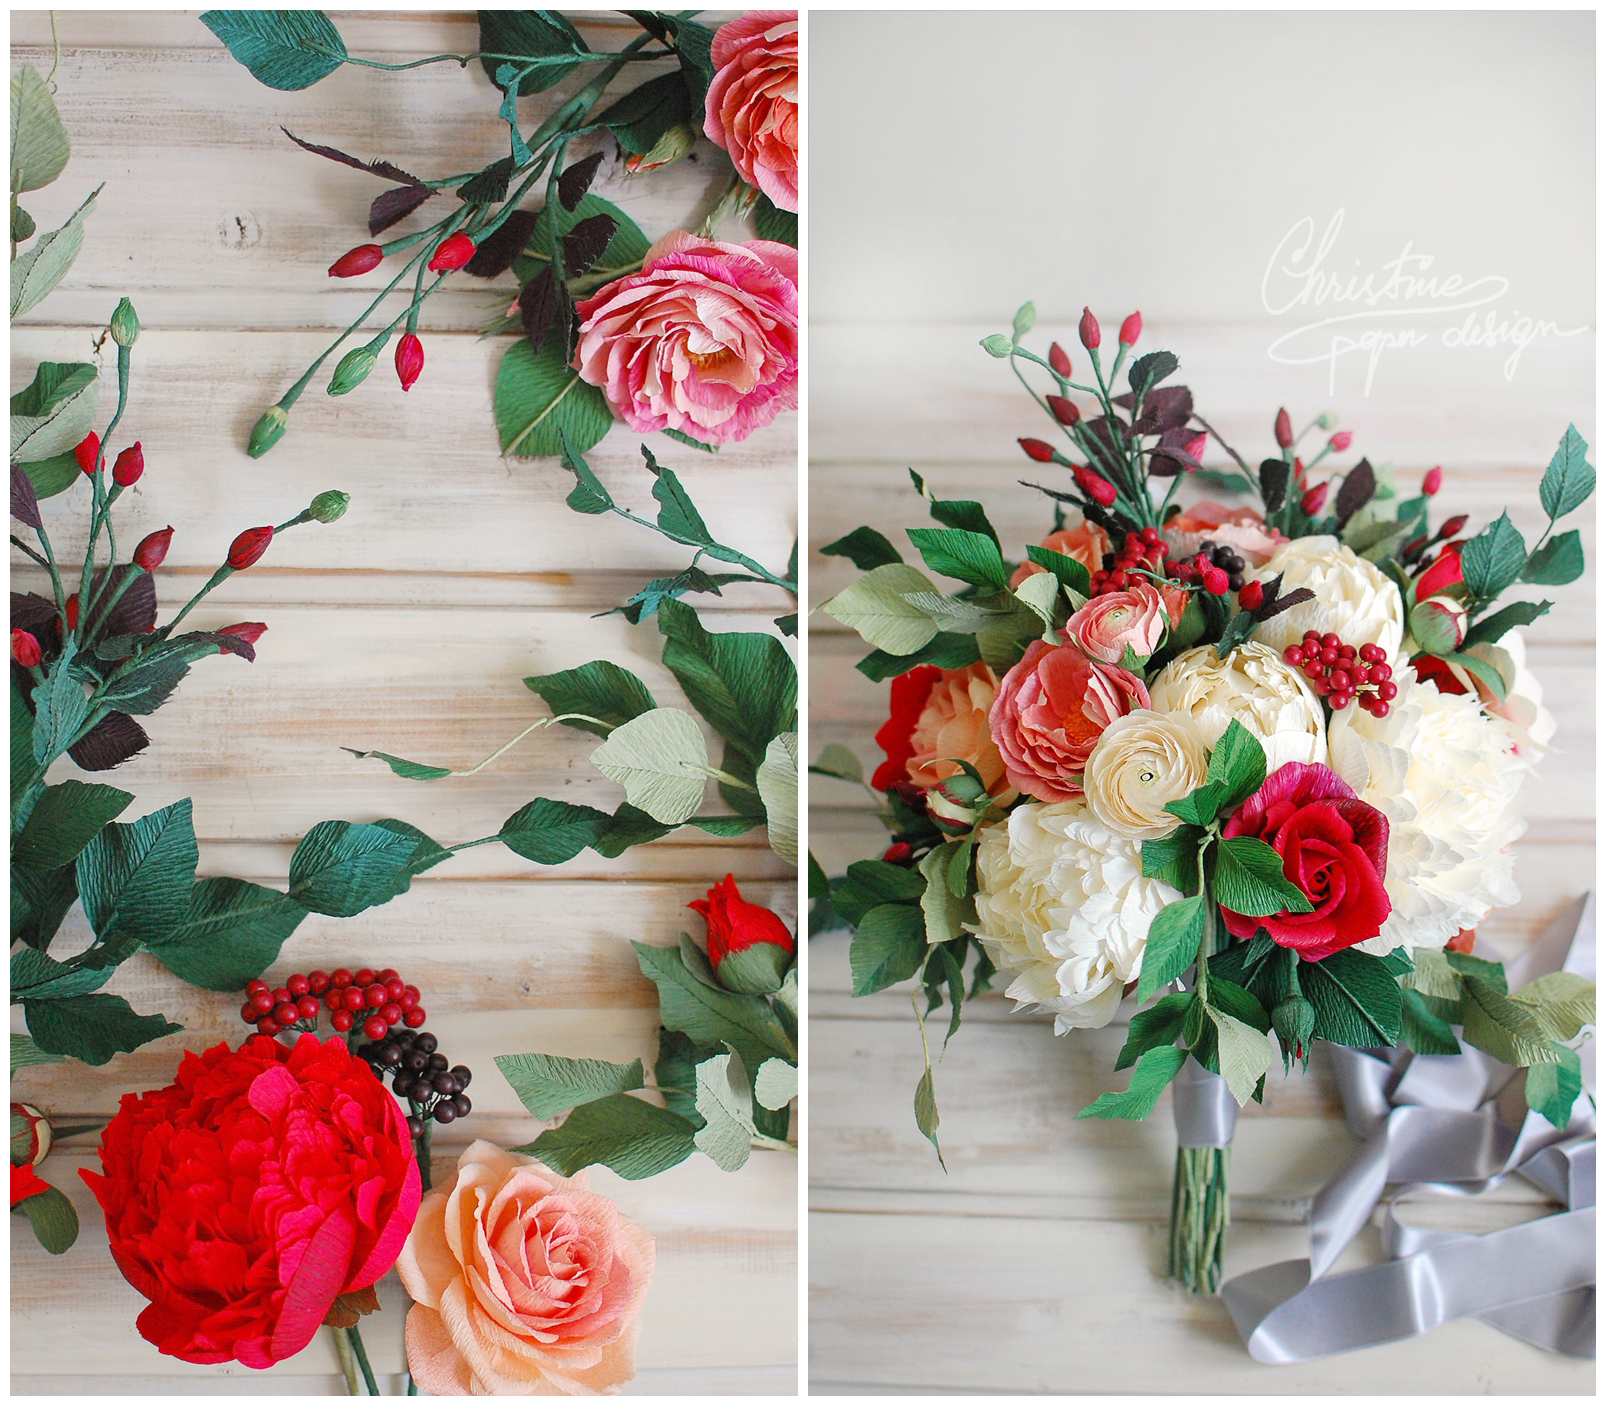 paper bridal bouquets with red - Christine paper design (3)